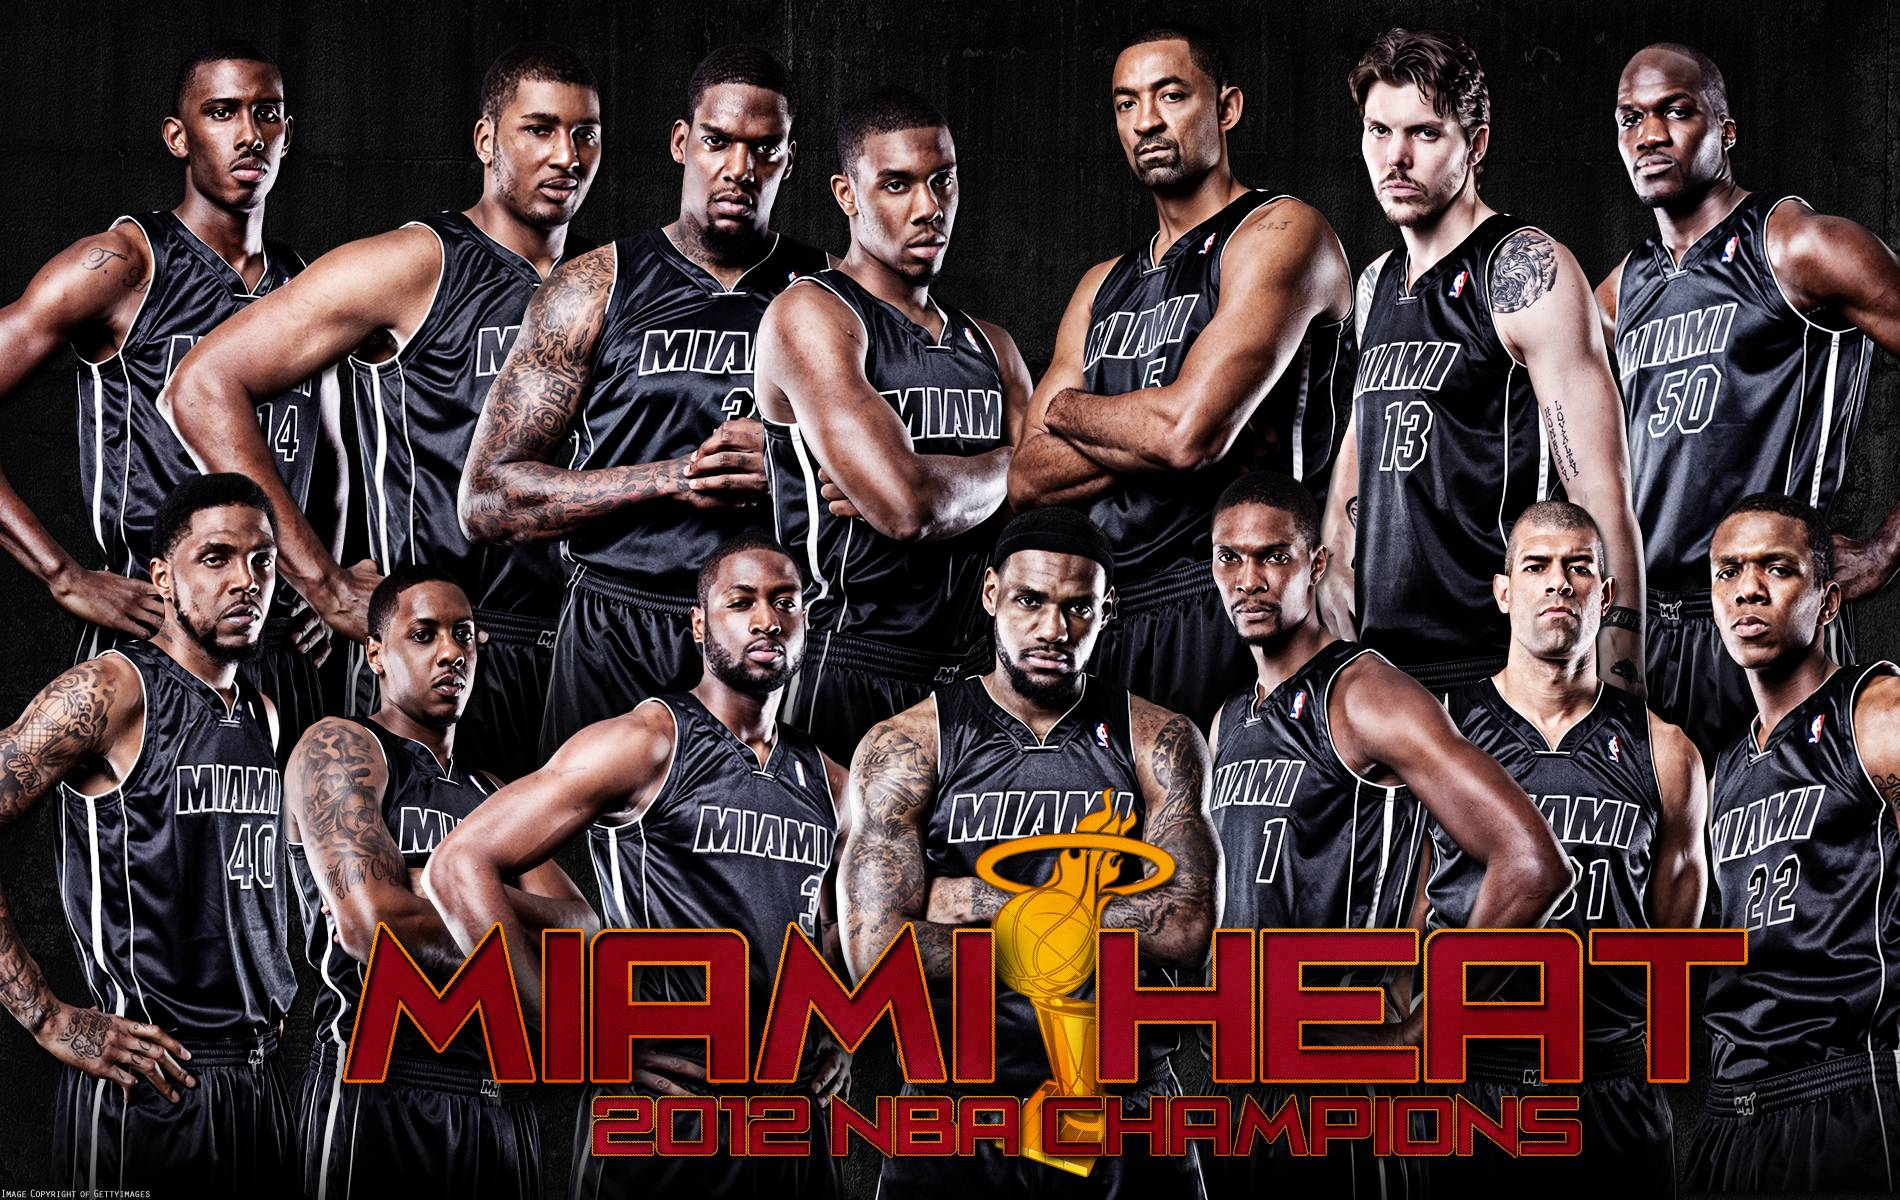 Mi miami heat team with lebron - Grab All Your Miami Heat Lebron James Finals Wallpapers Message